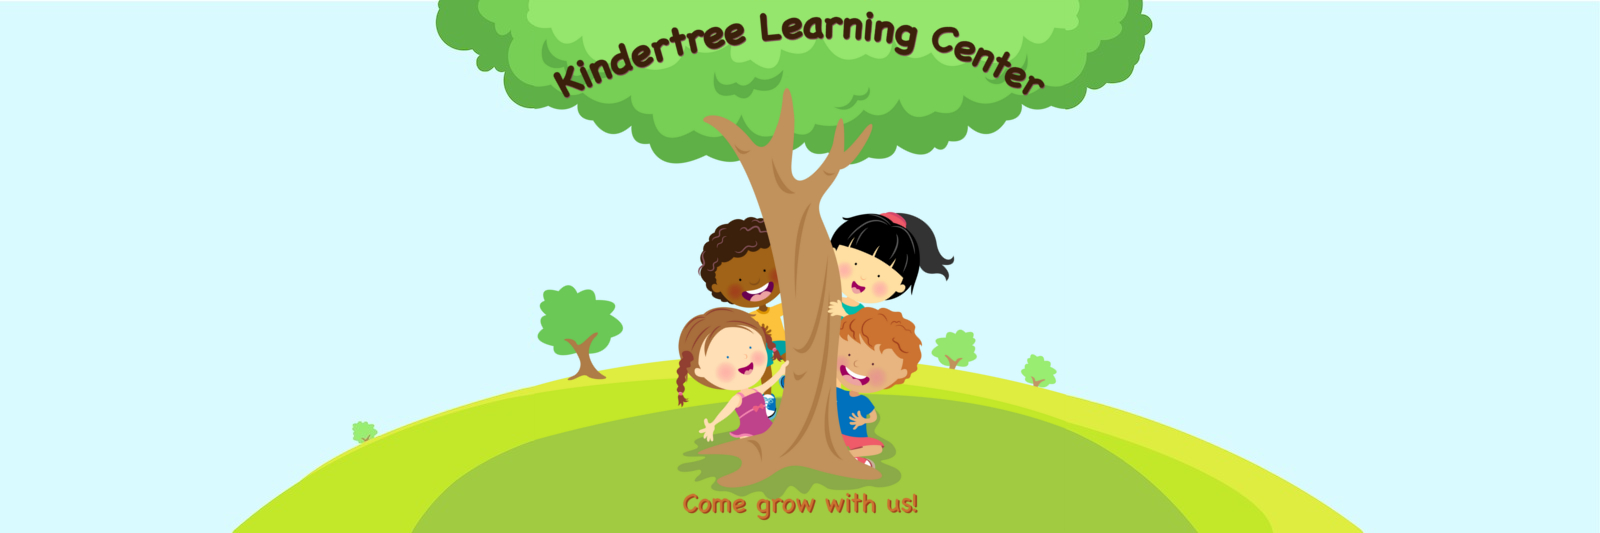 Kindertree Learning Center